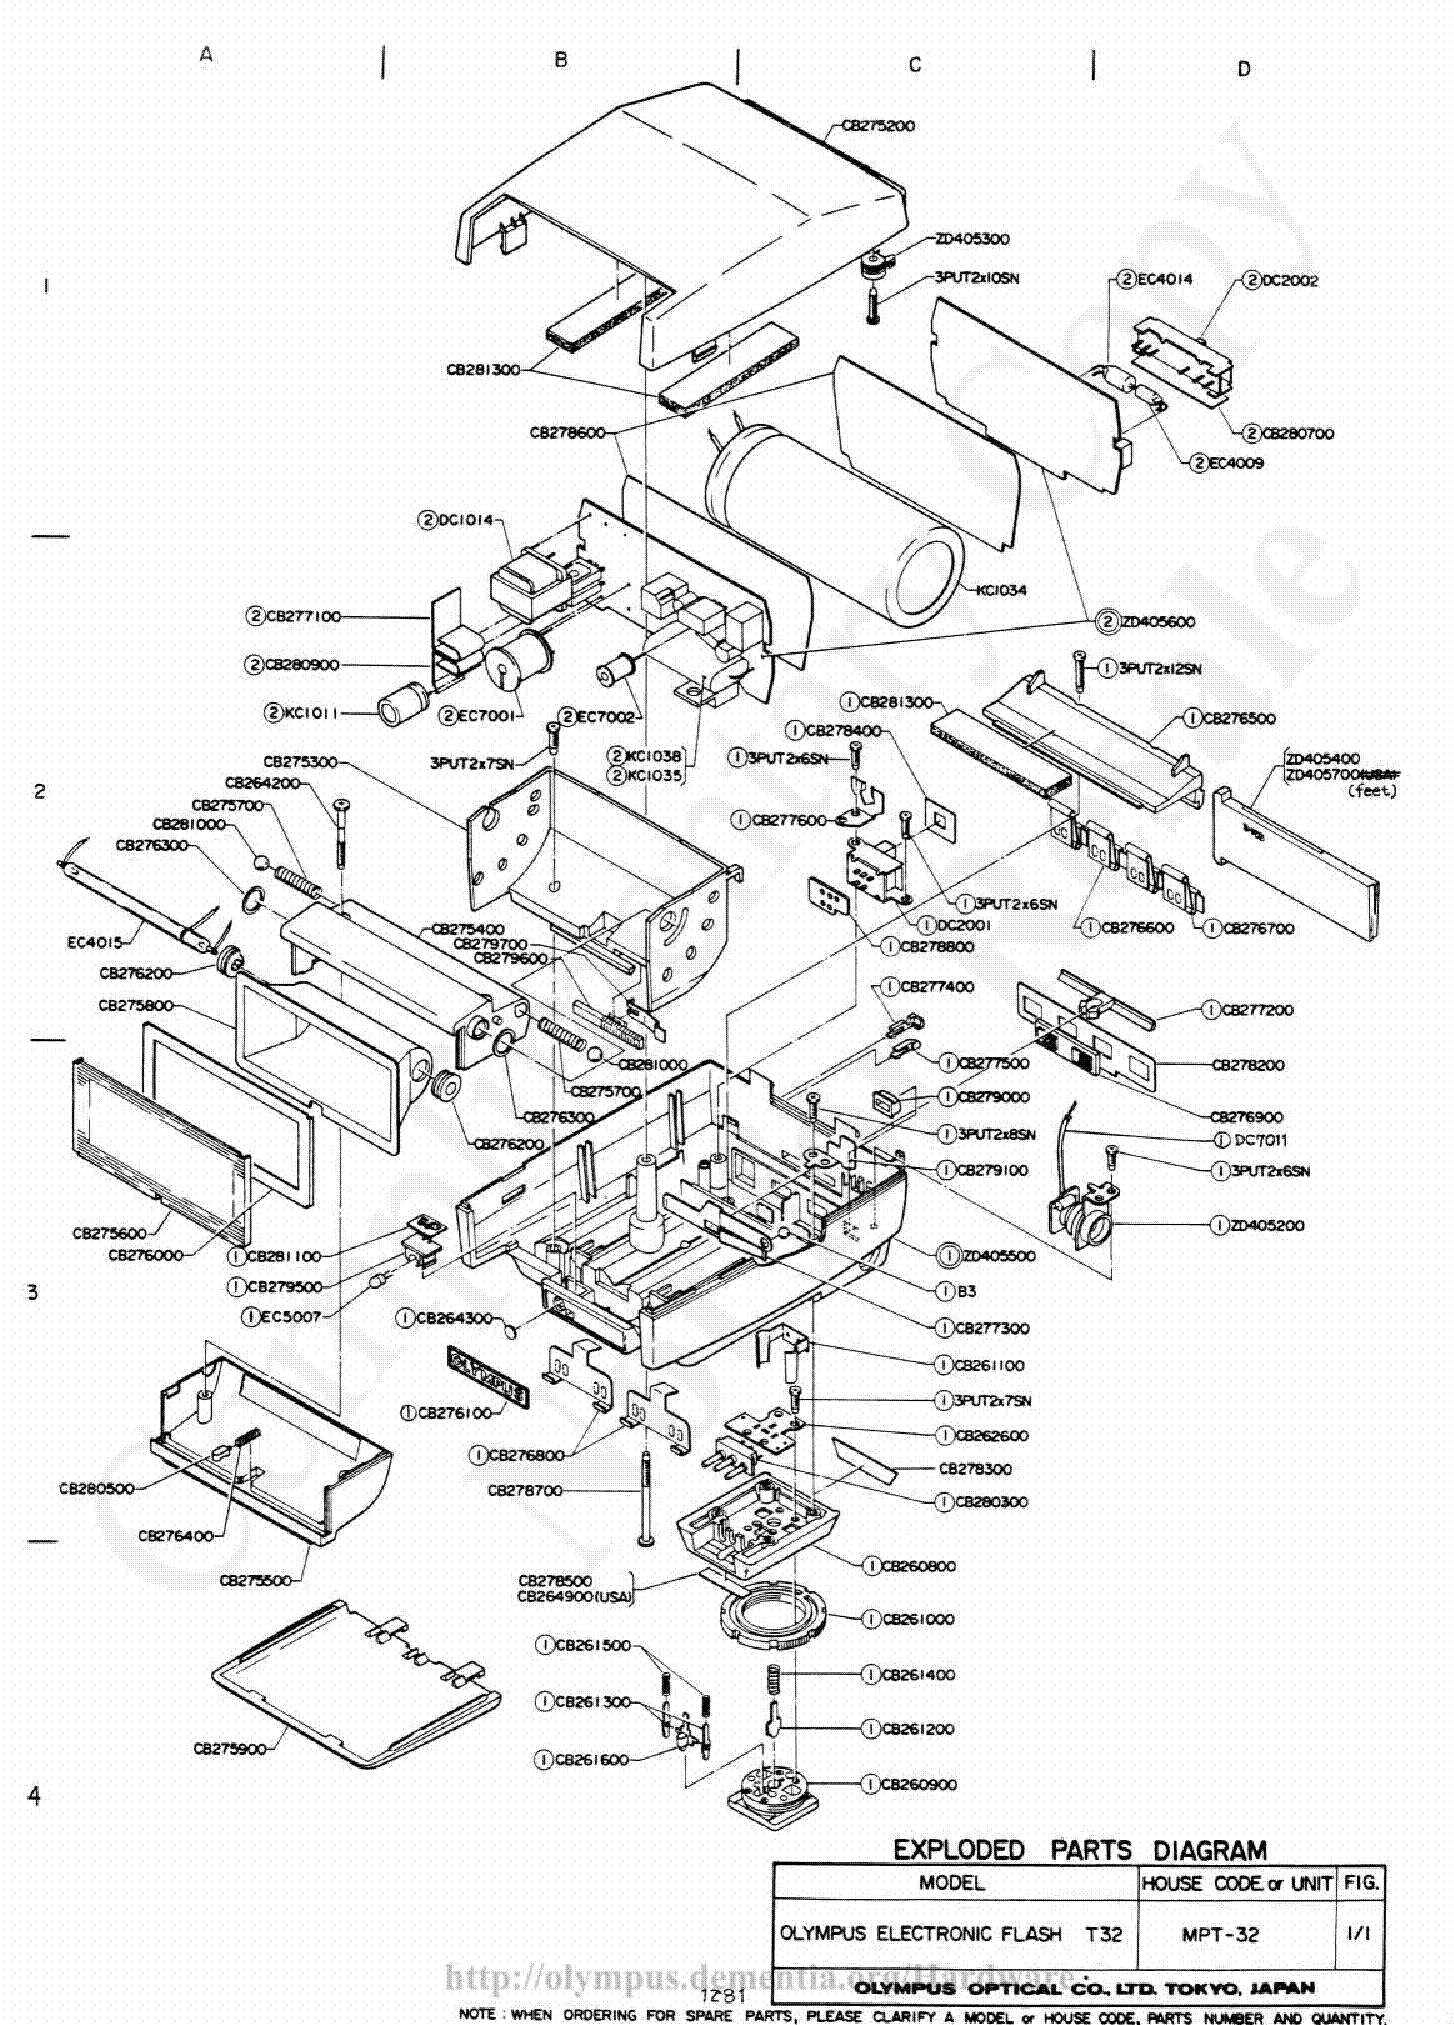 parts explosion diagram 95 mustang gt fuel pump wiring olympus t 32 exploded service manual